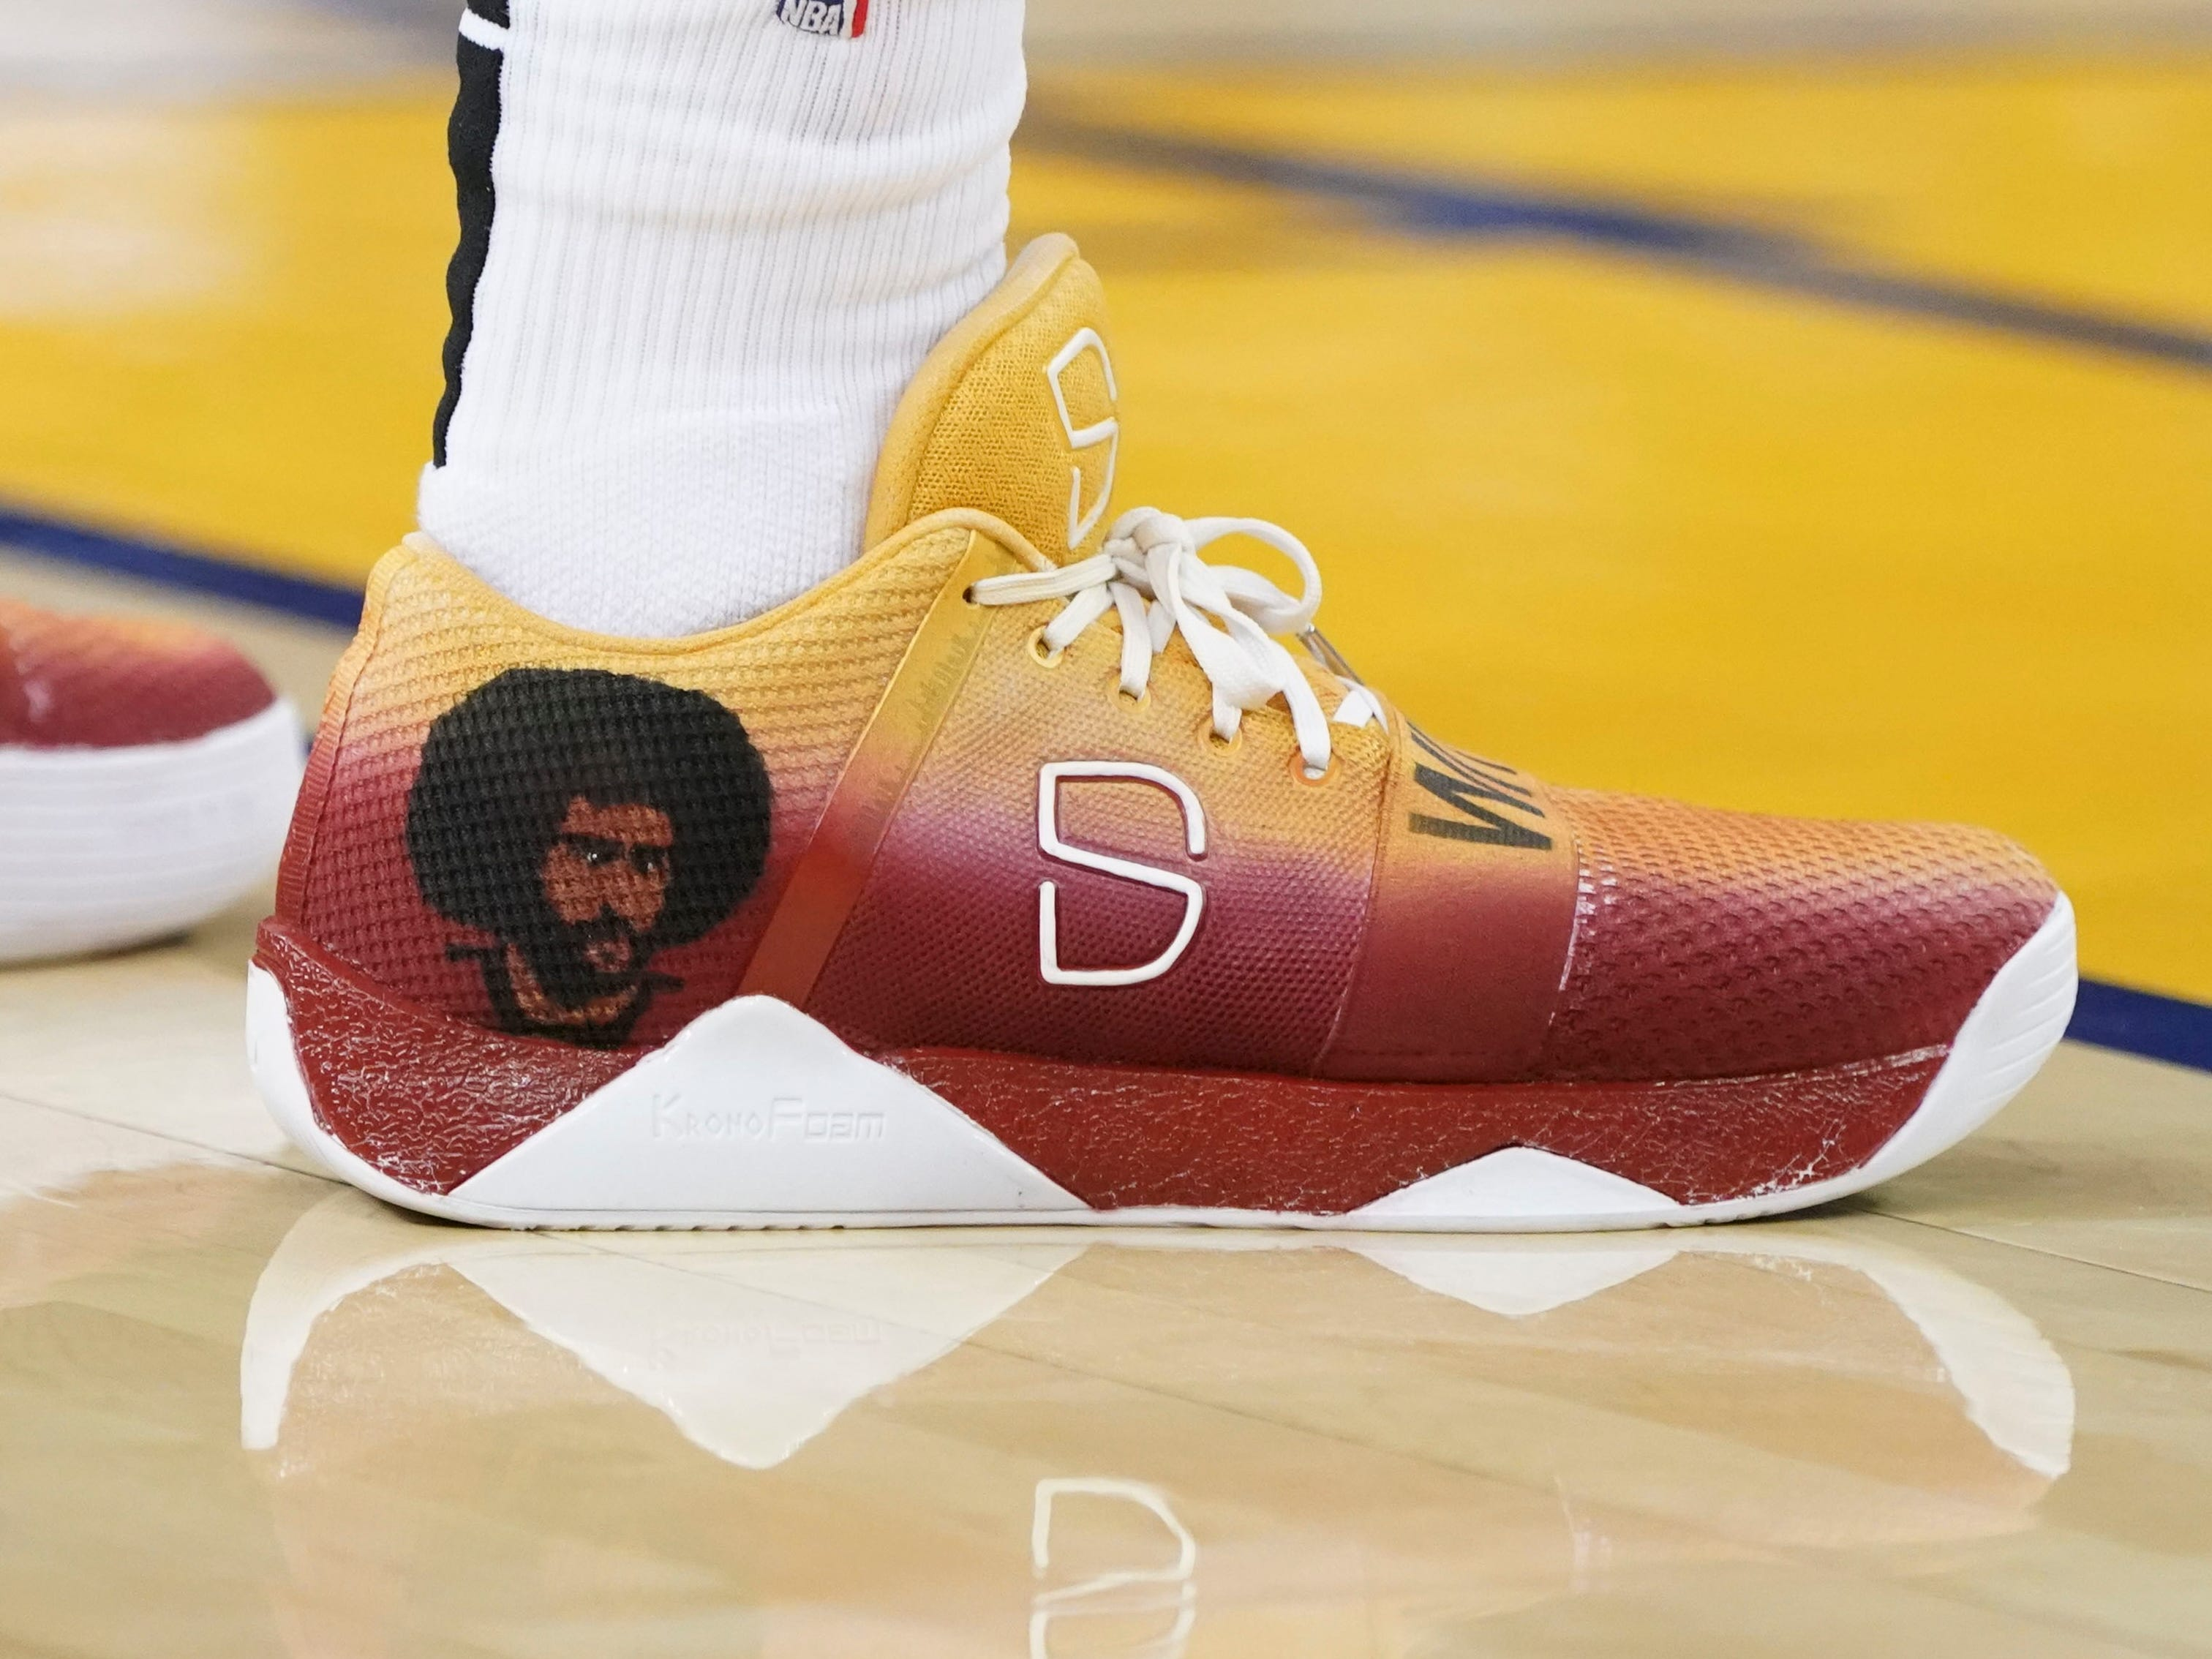 Nov. 10: Spencer Dinwiddie, Nets (Colin Kaepernick tribute)